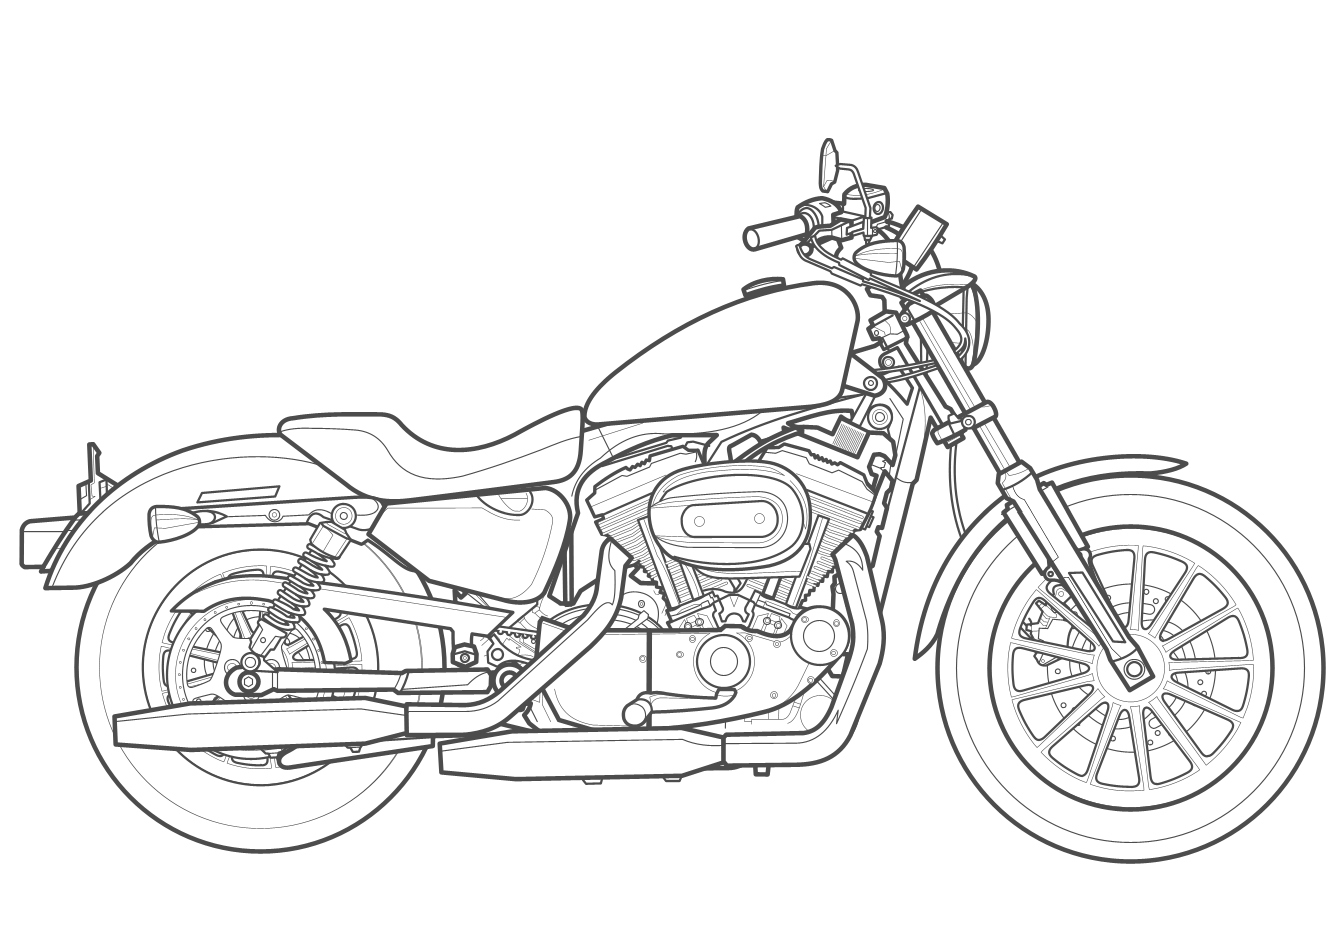 1343x950 its a clever use of words and the simple drawing of the motorcycle